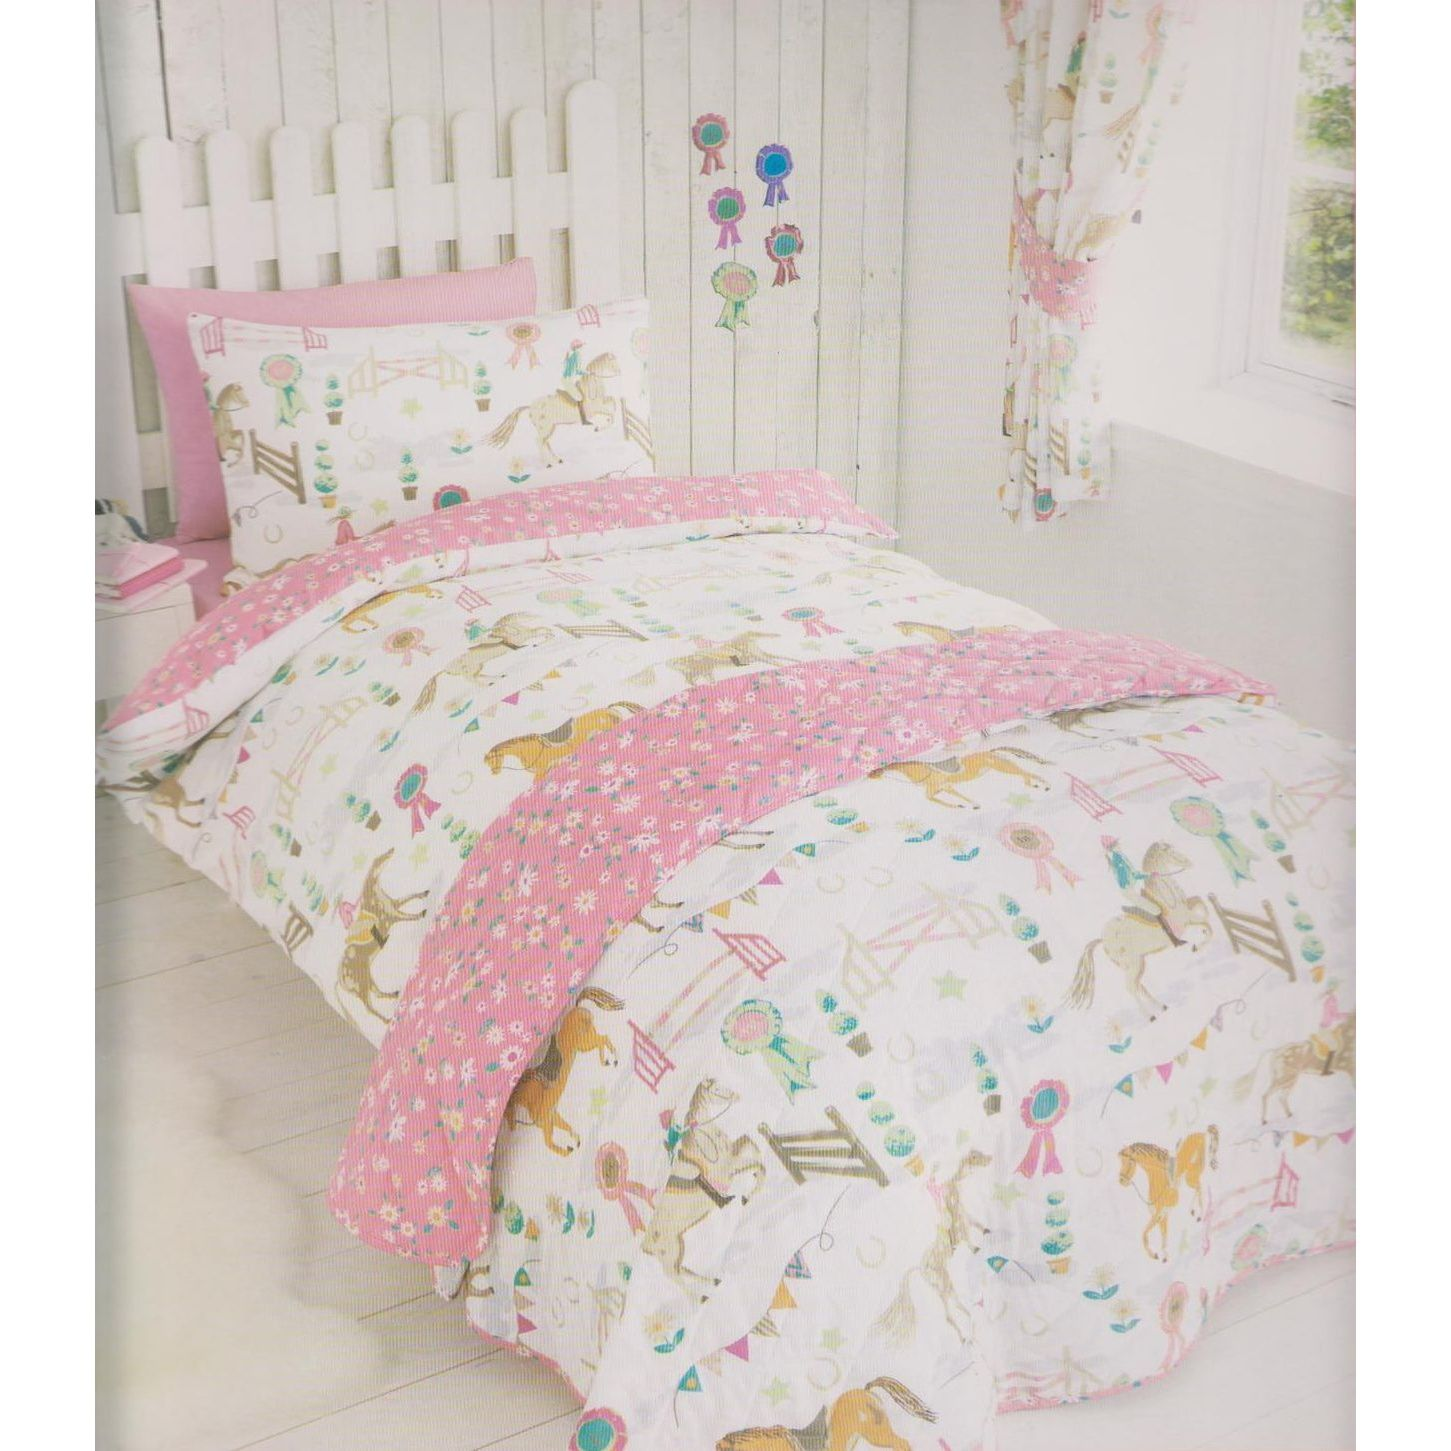 Childrens Bedding Set With Horse Show Design Pink Fl On Reverse Available In Single And Double Sizes One Pillowcase Size